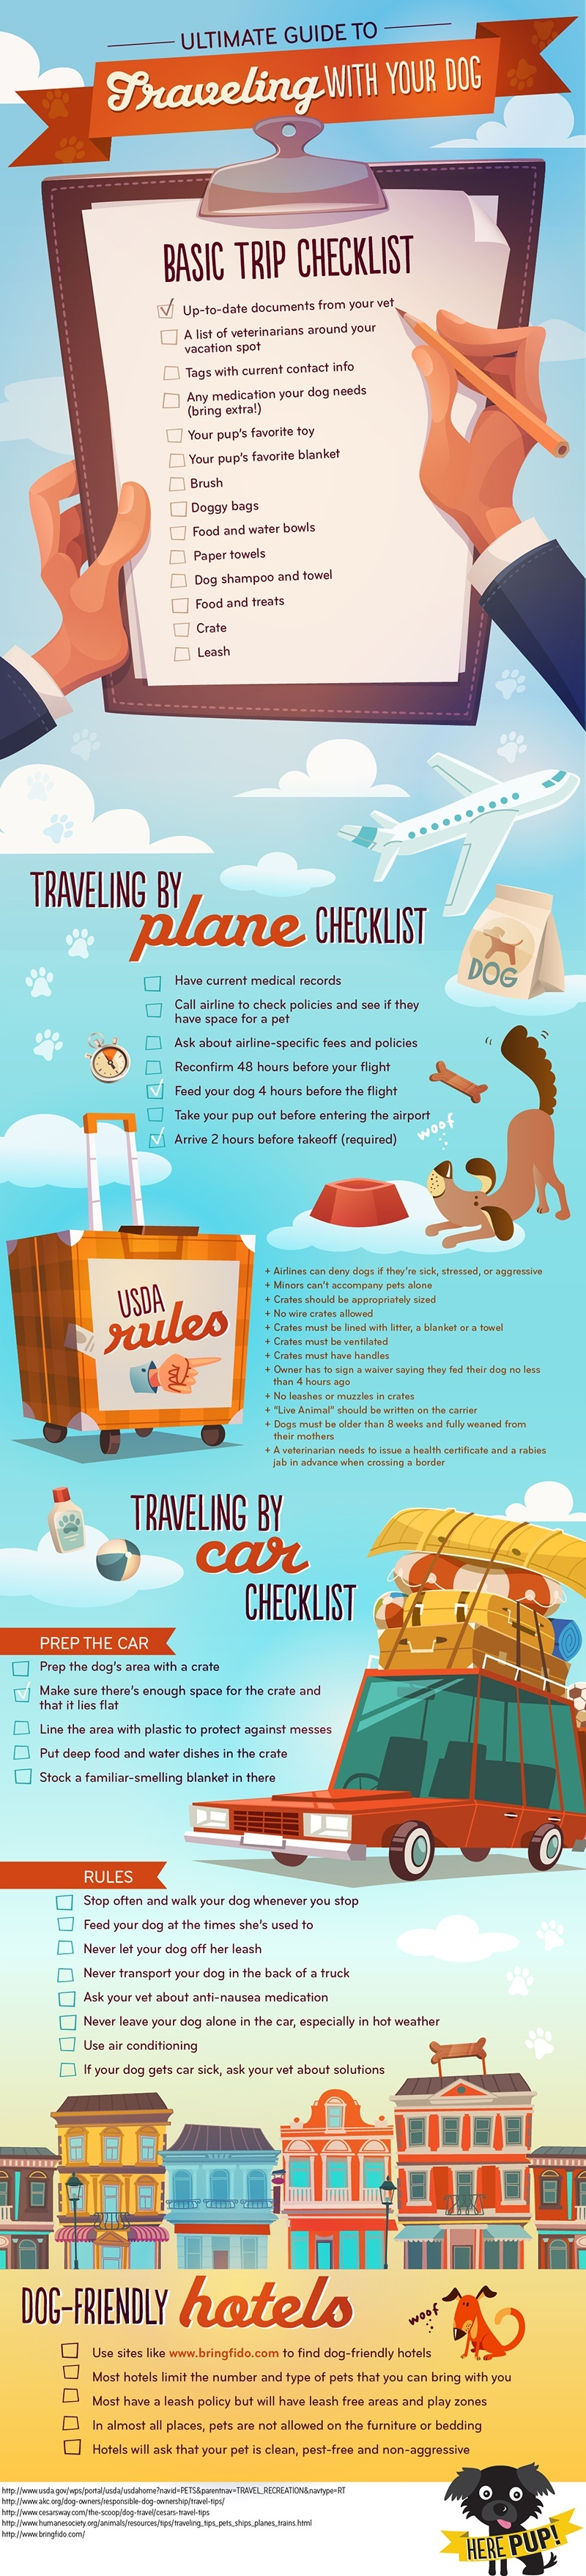 Ultimate Guide to Traveling with Your Dog